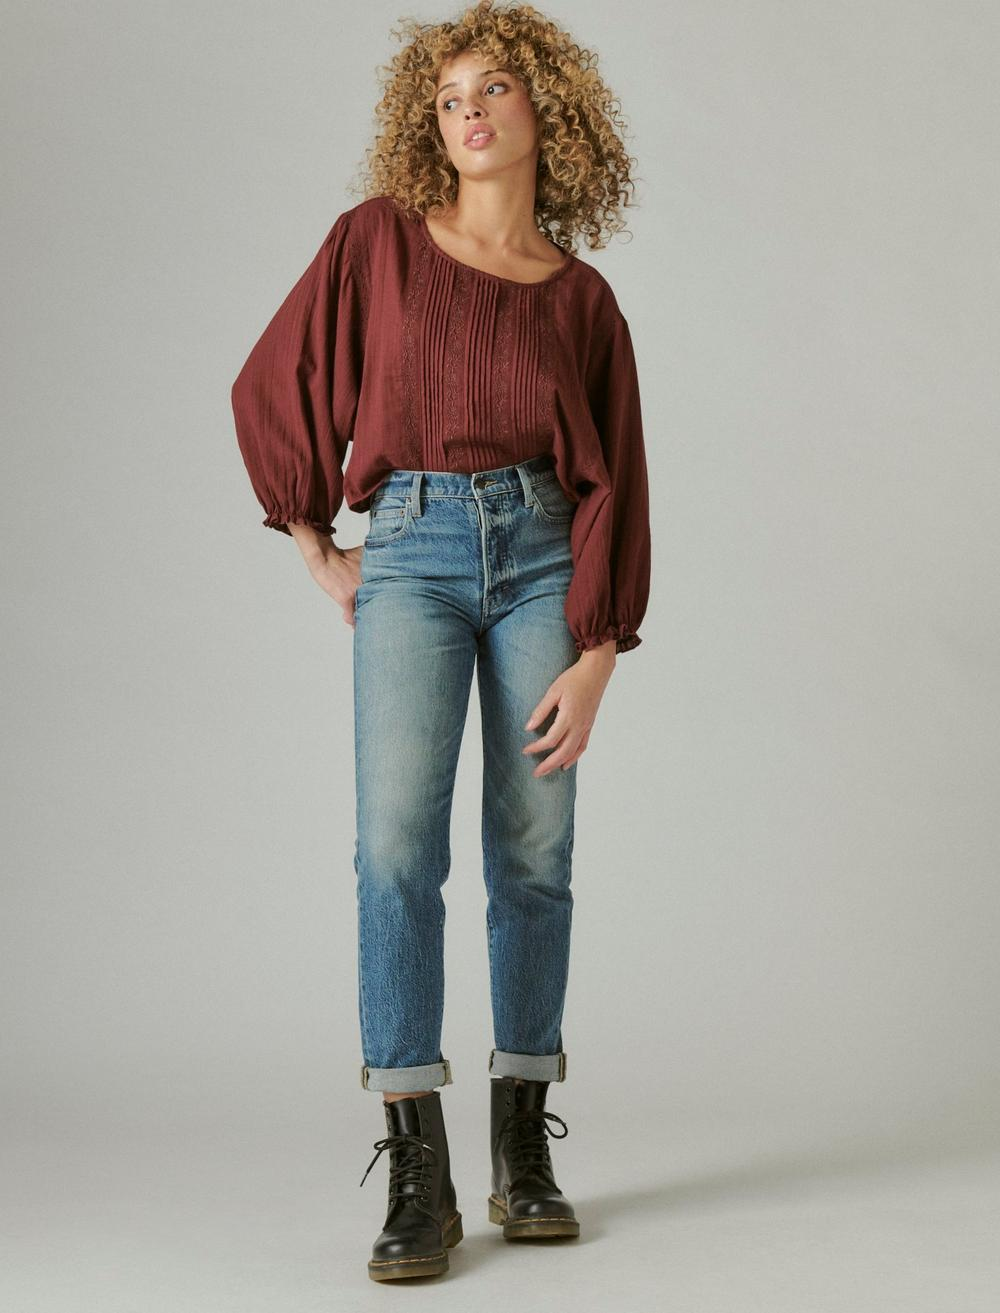 EMBROIDERED ROUND NECK BOXY BLOUSE, image 2